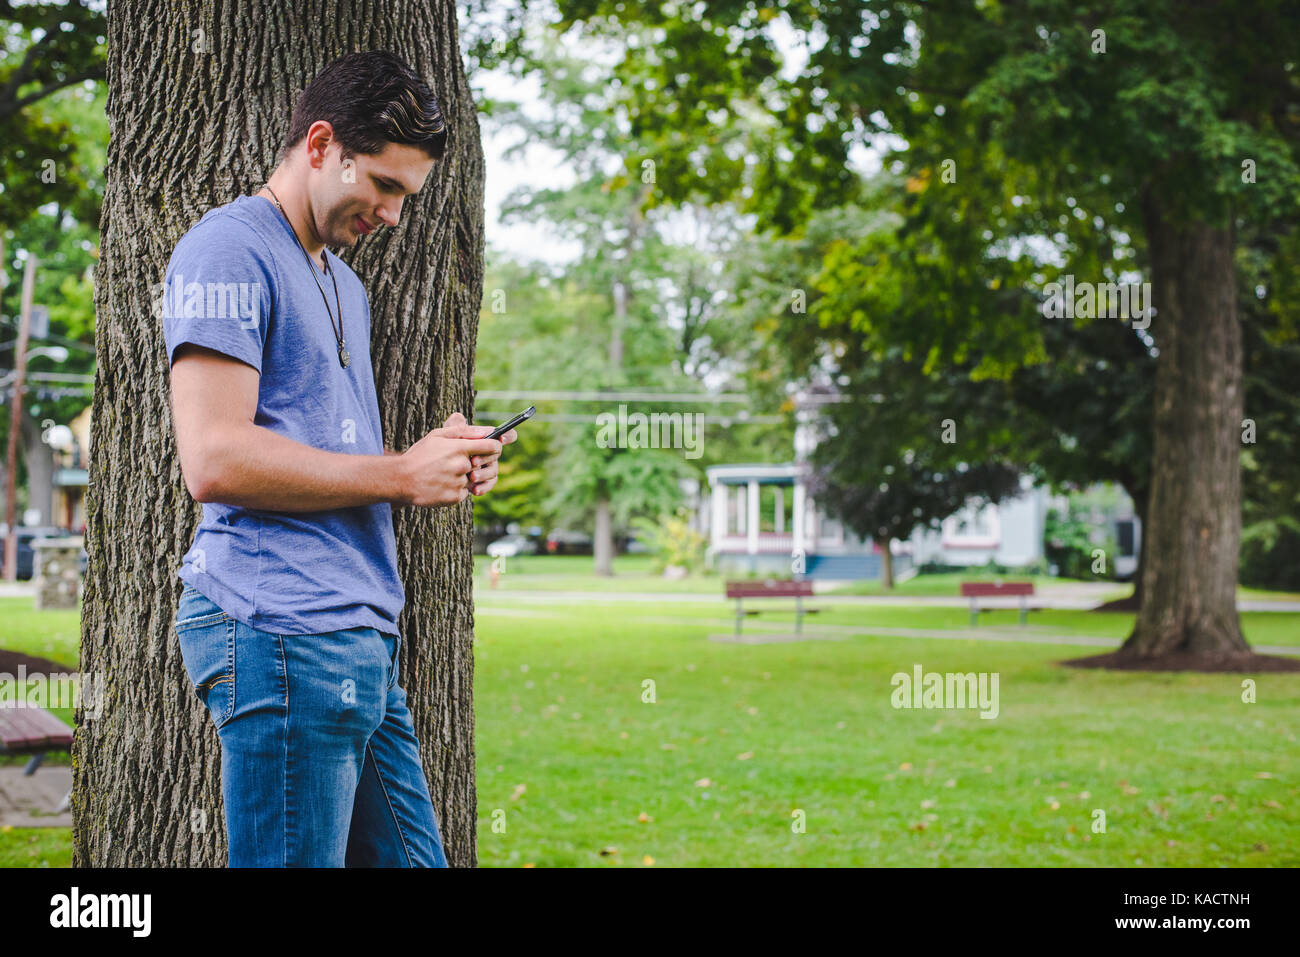 A young man looks at his cellphone while leaning against a tree in a park. - Stock Image